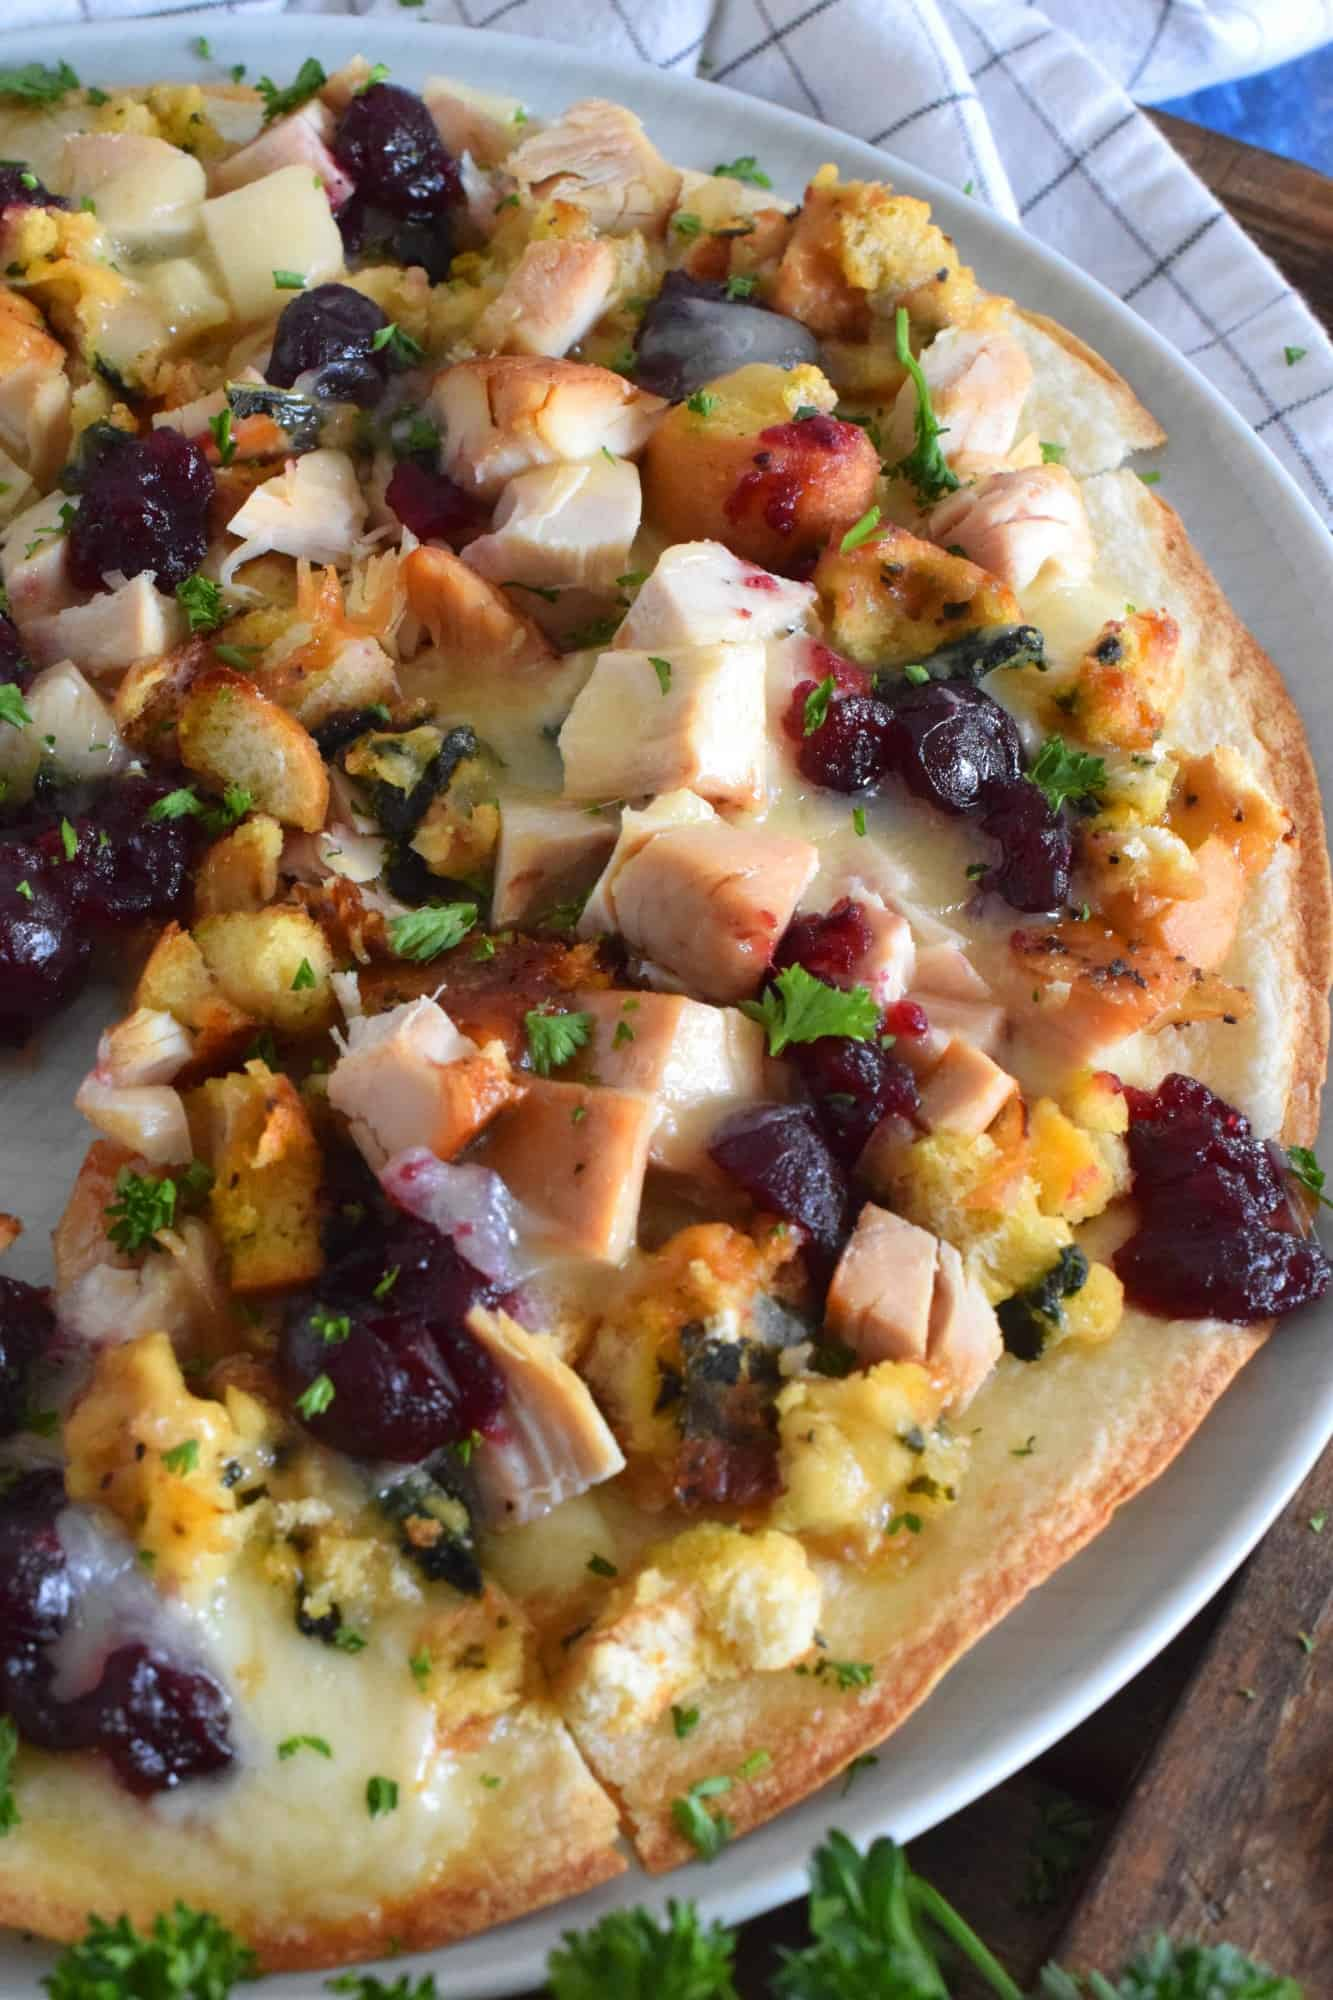 Turkey And Stuffing Tortilla Pizza